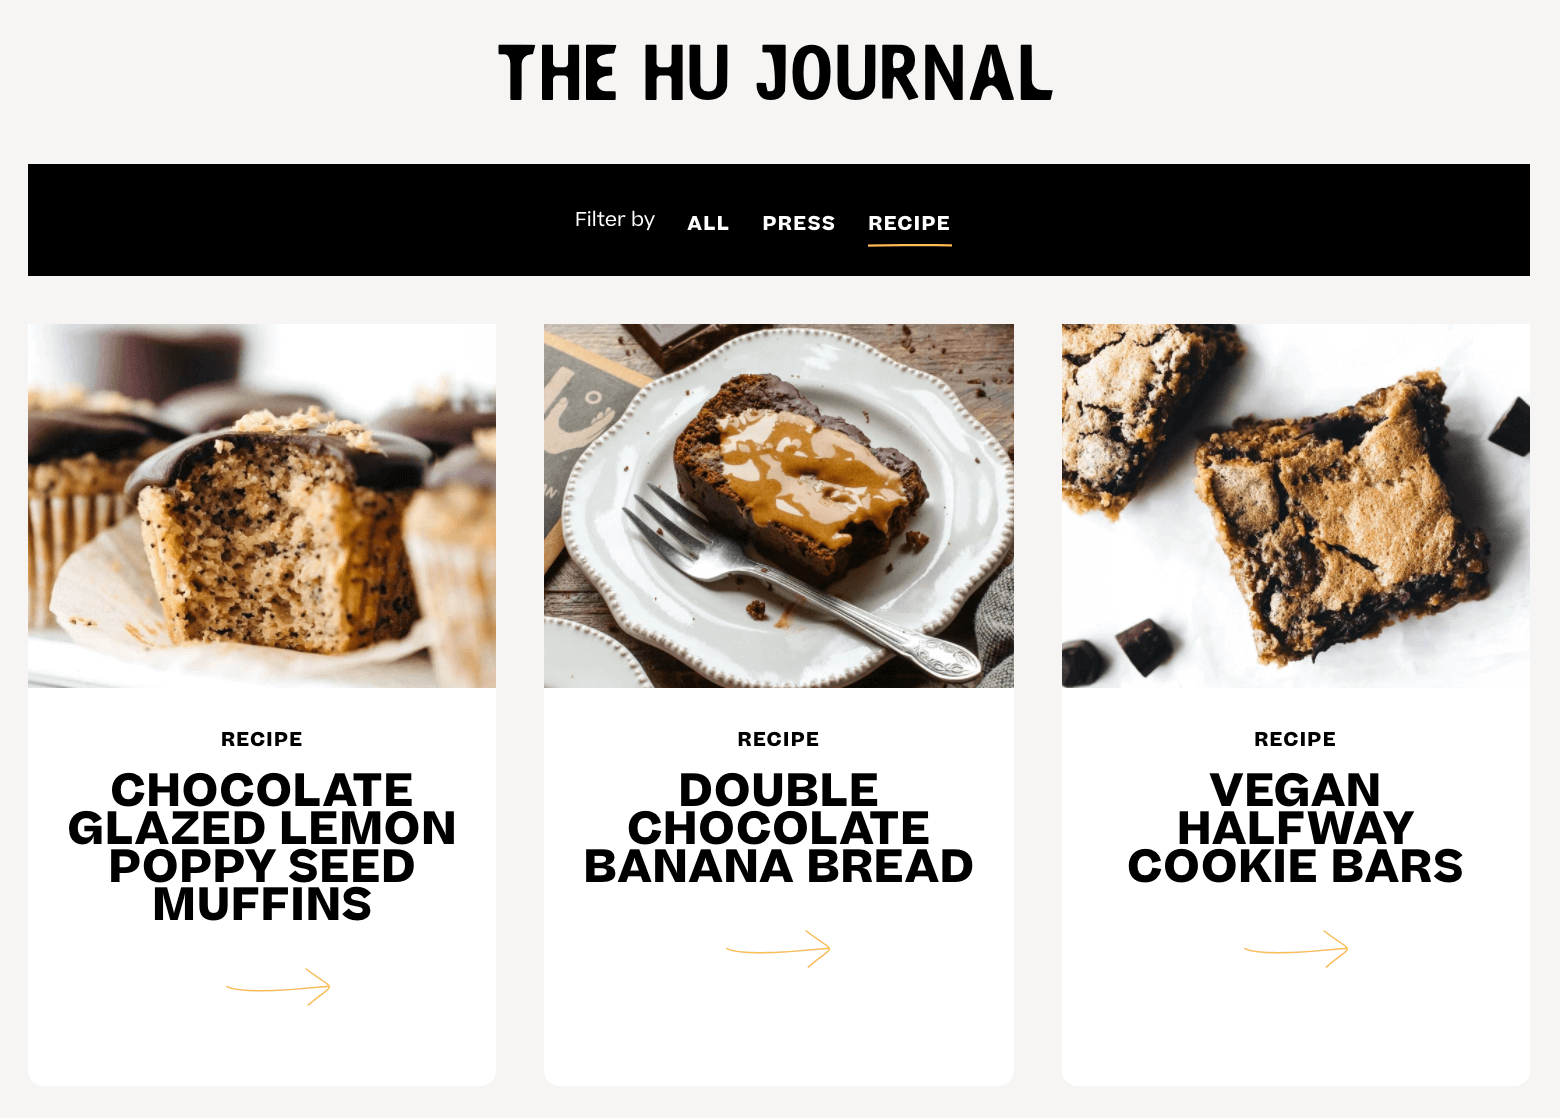 Hu has dedicated recipe blogs that highlight the number of different ways their product can be used